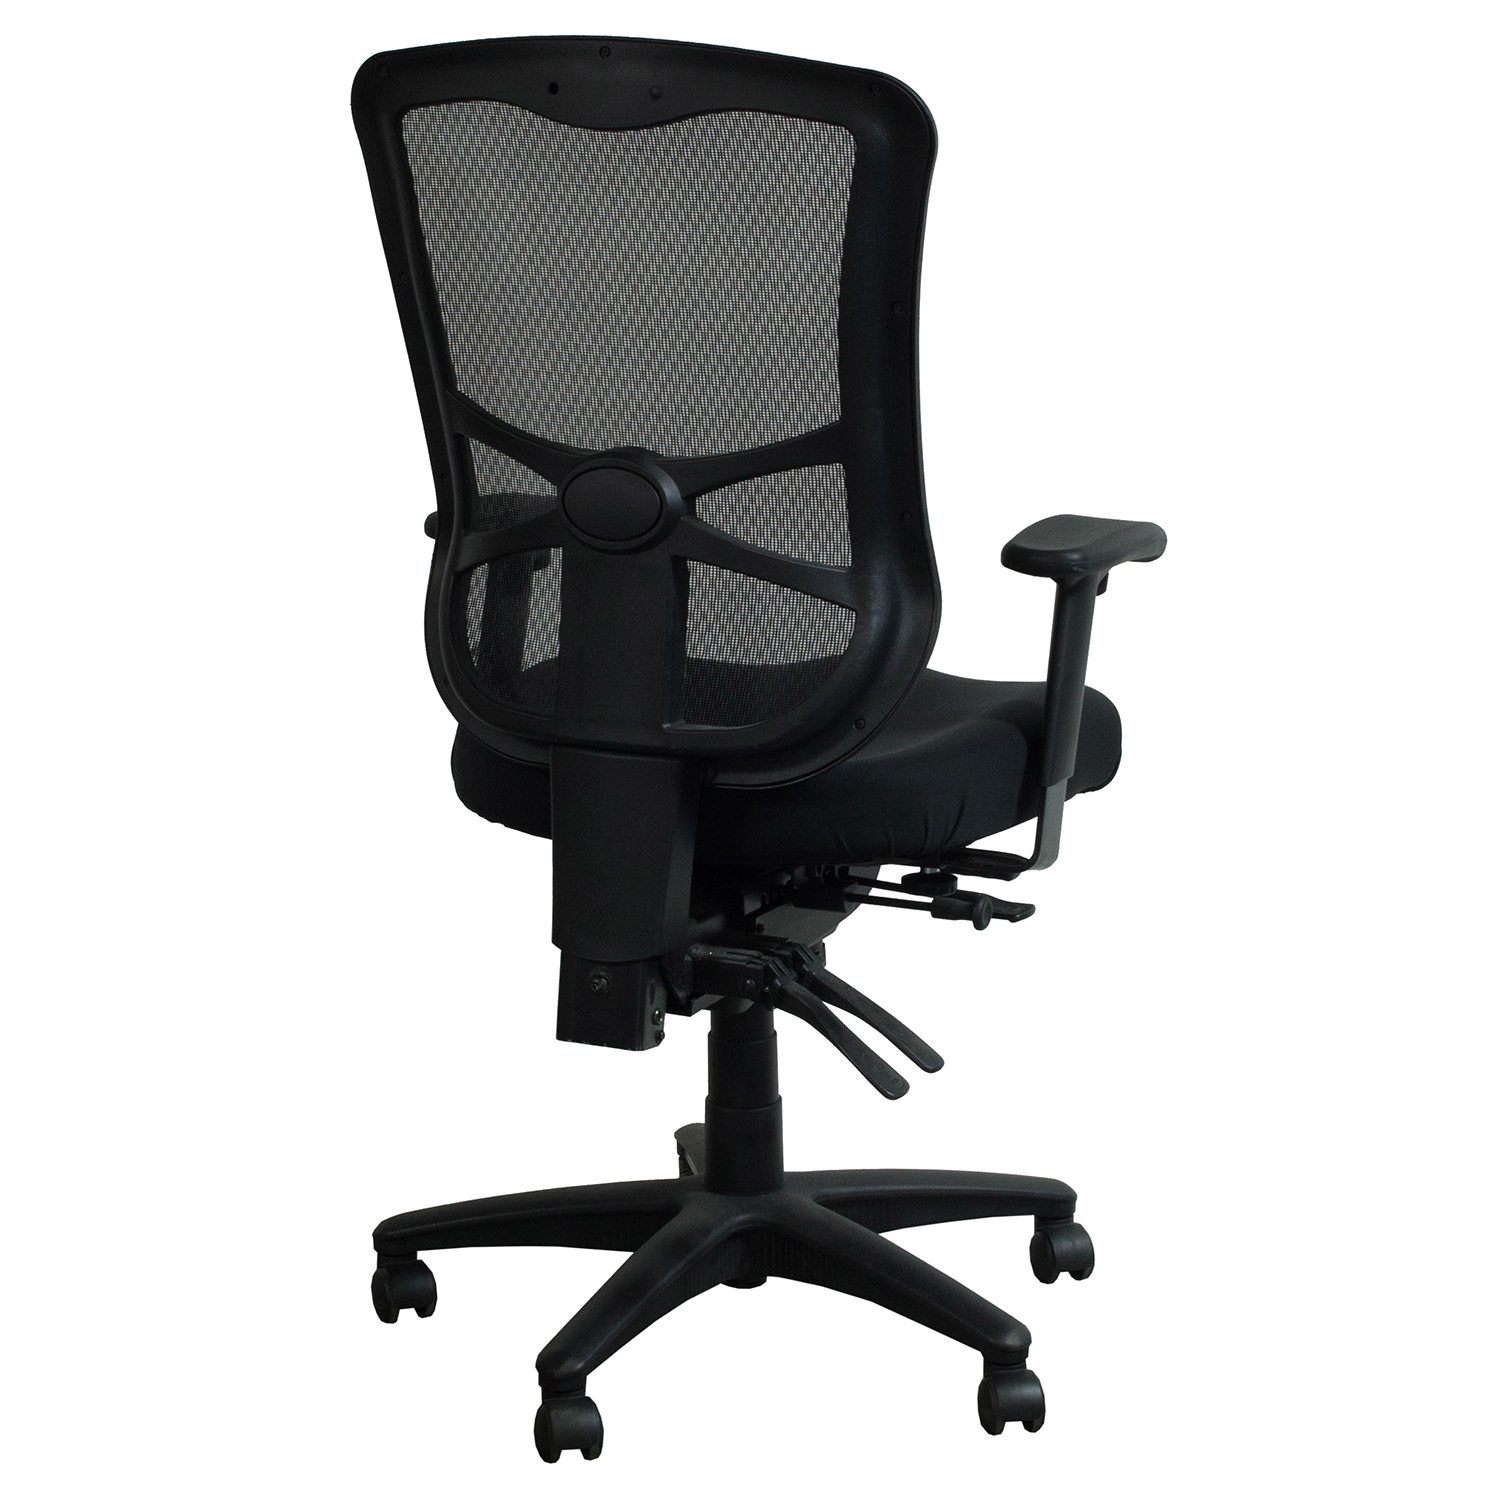 Alera Chair Alera Elusion Series Used Mesh High Back Chair Black